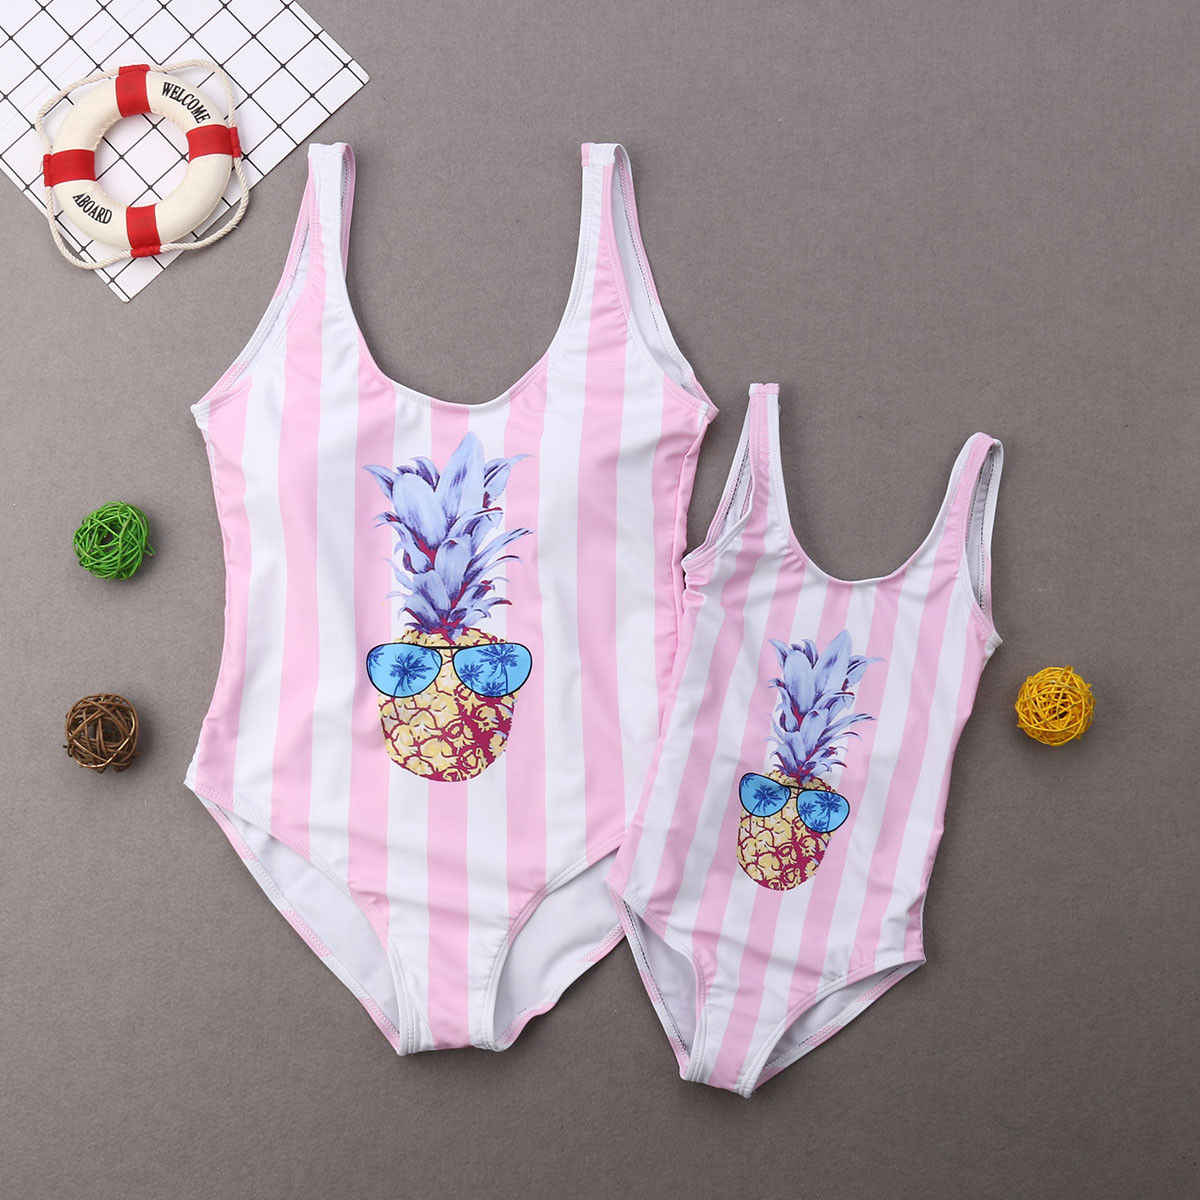 a9dbcc4afc Hirigin 2019 Family Matching Swimwear Mother And Me New Stripes One Piece  Swimsuit Backless Babys Summer